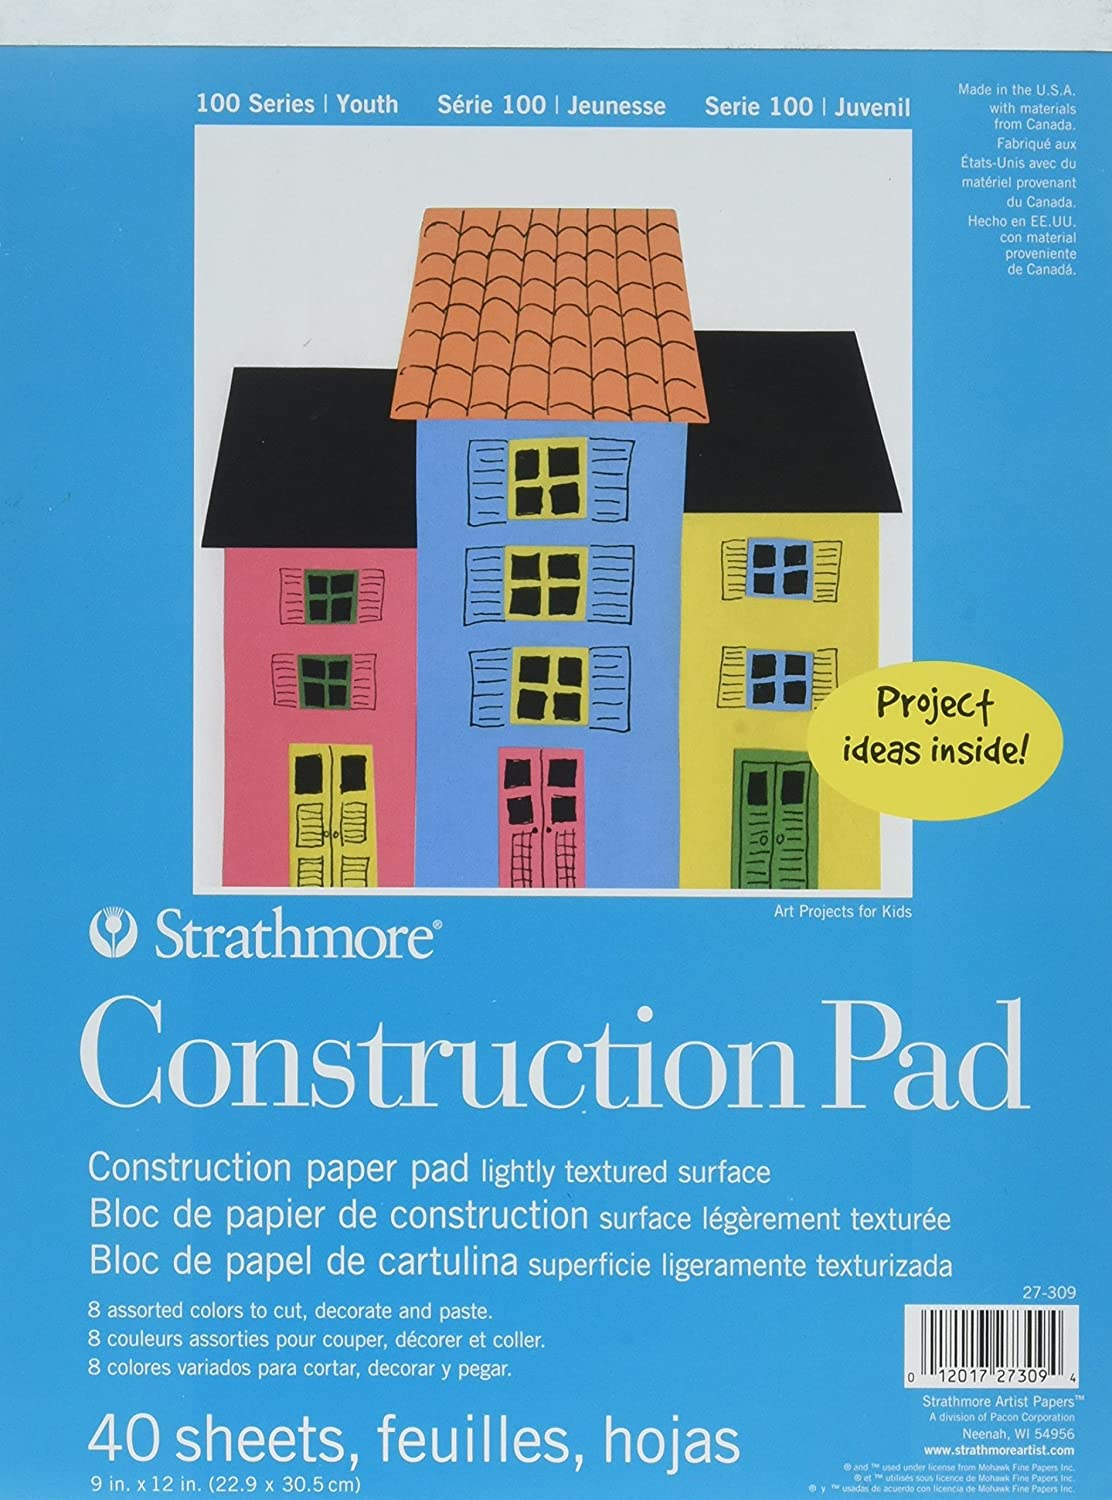 Strathmore (27-309 100 Series Youth Construction Paper Pad, 9